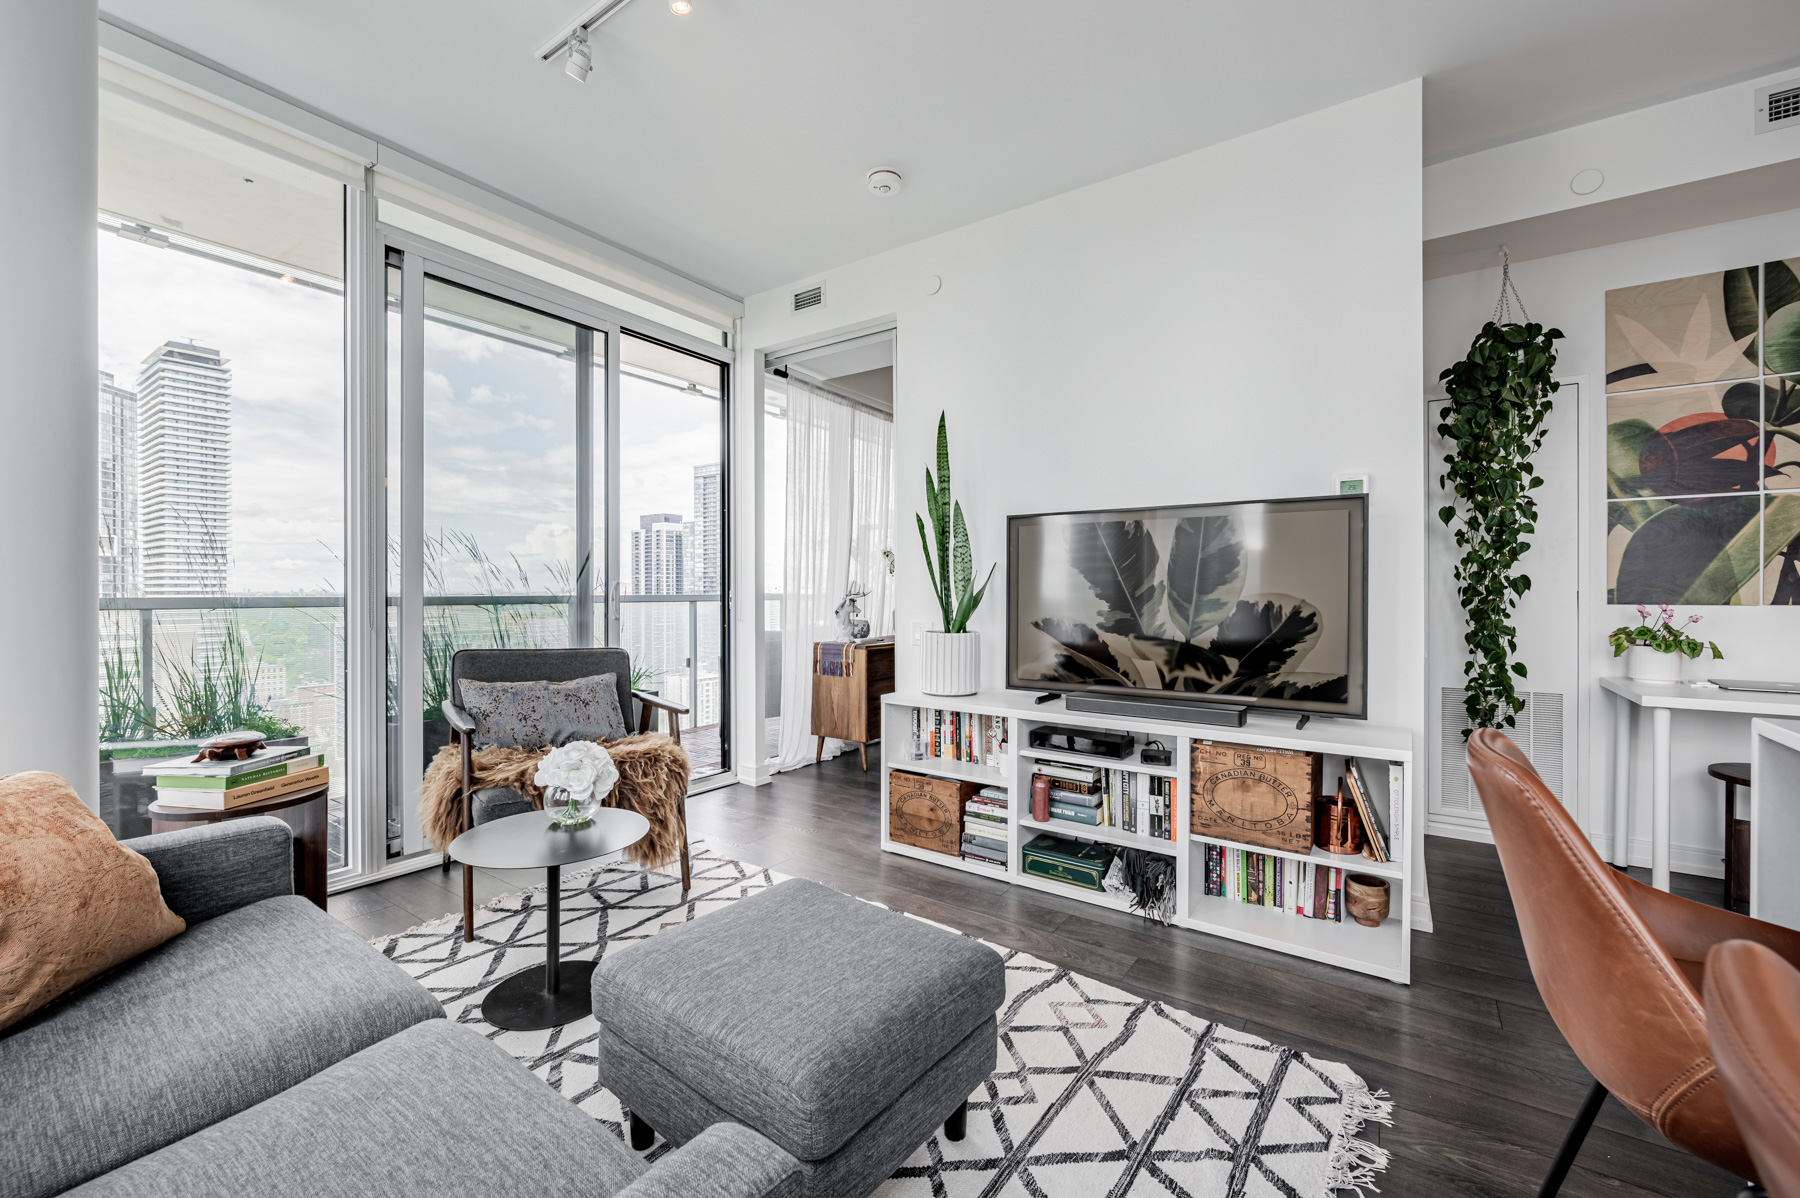 Condo living room with potted plants and dark laminate floors.